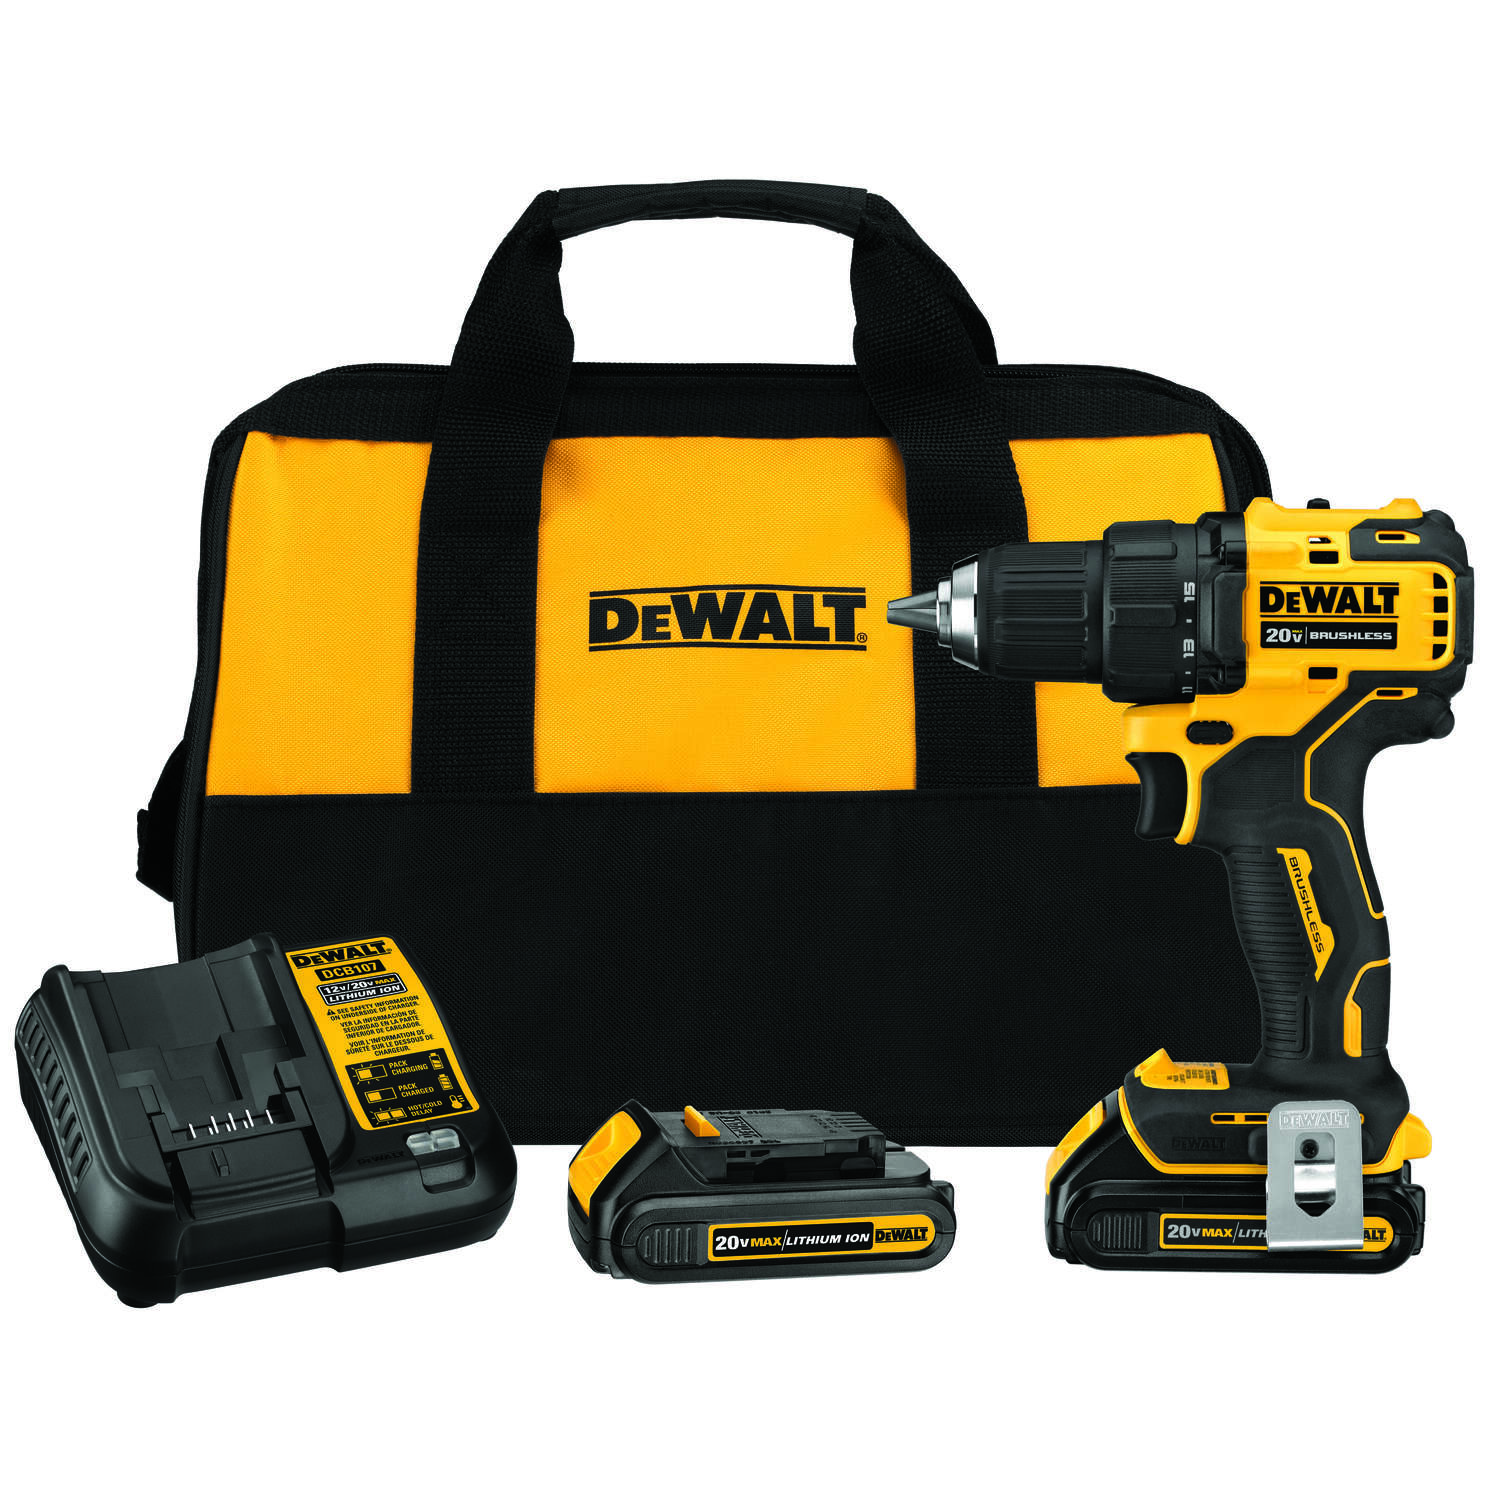 DeWalt Atomic 20 volt Brushless Cordless Compact Drill/Driver Kit 1/2 in. 1650 rpm